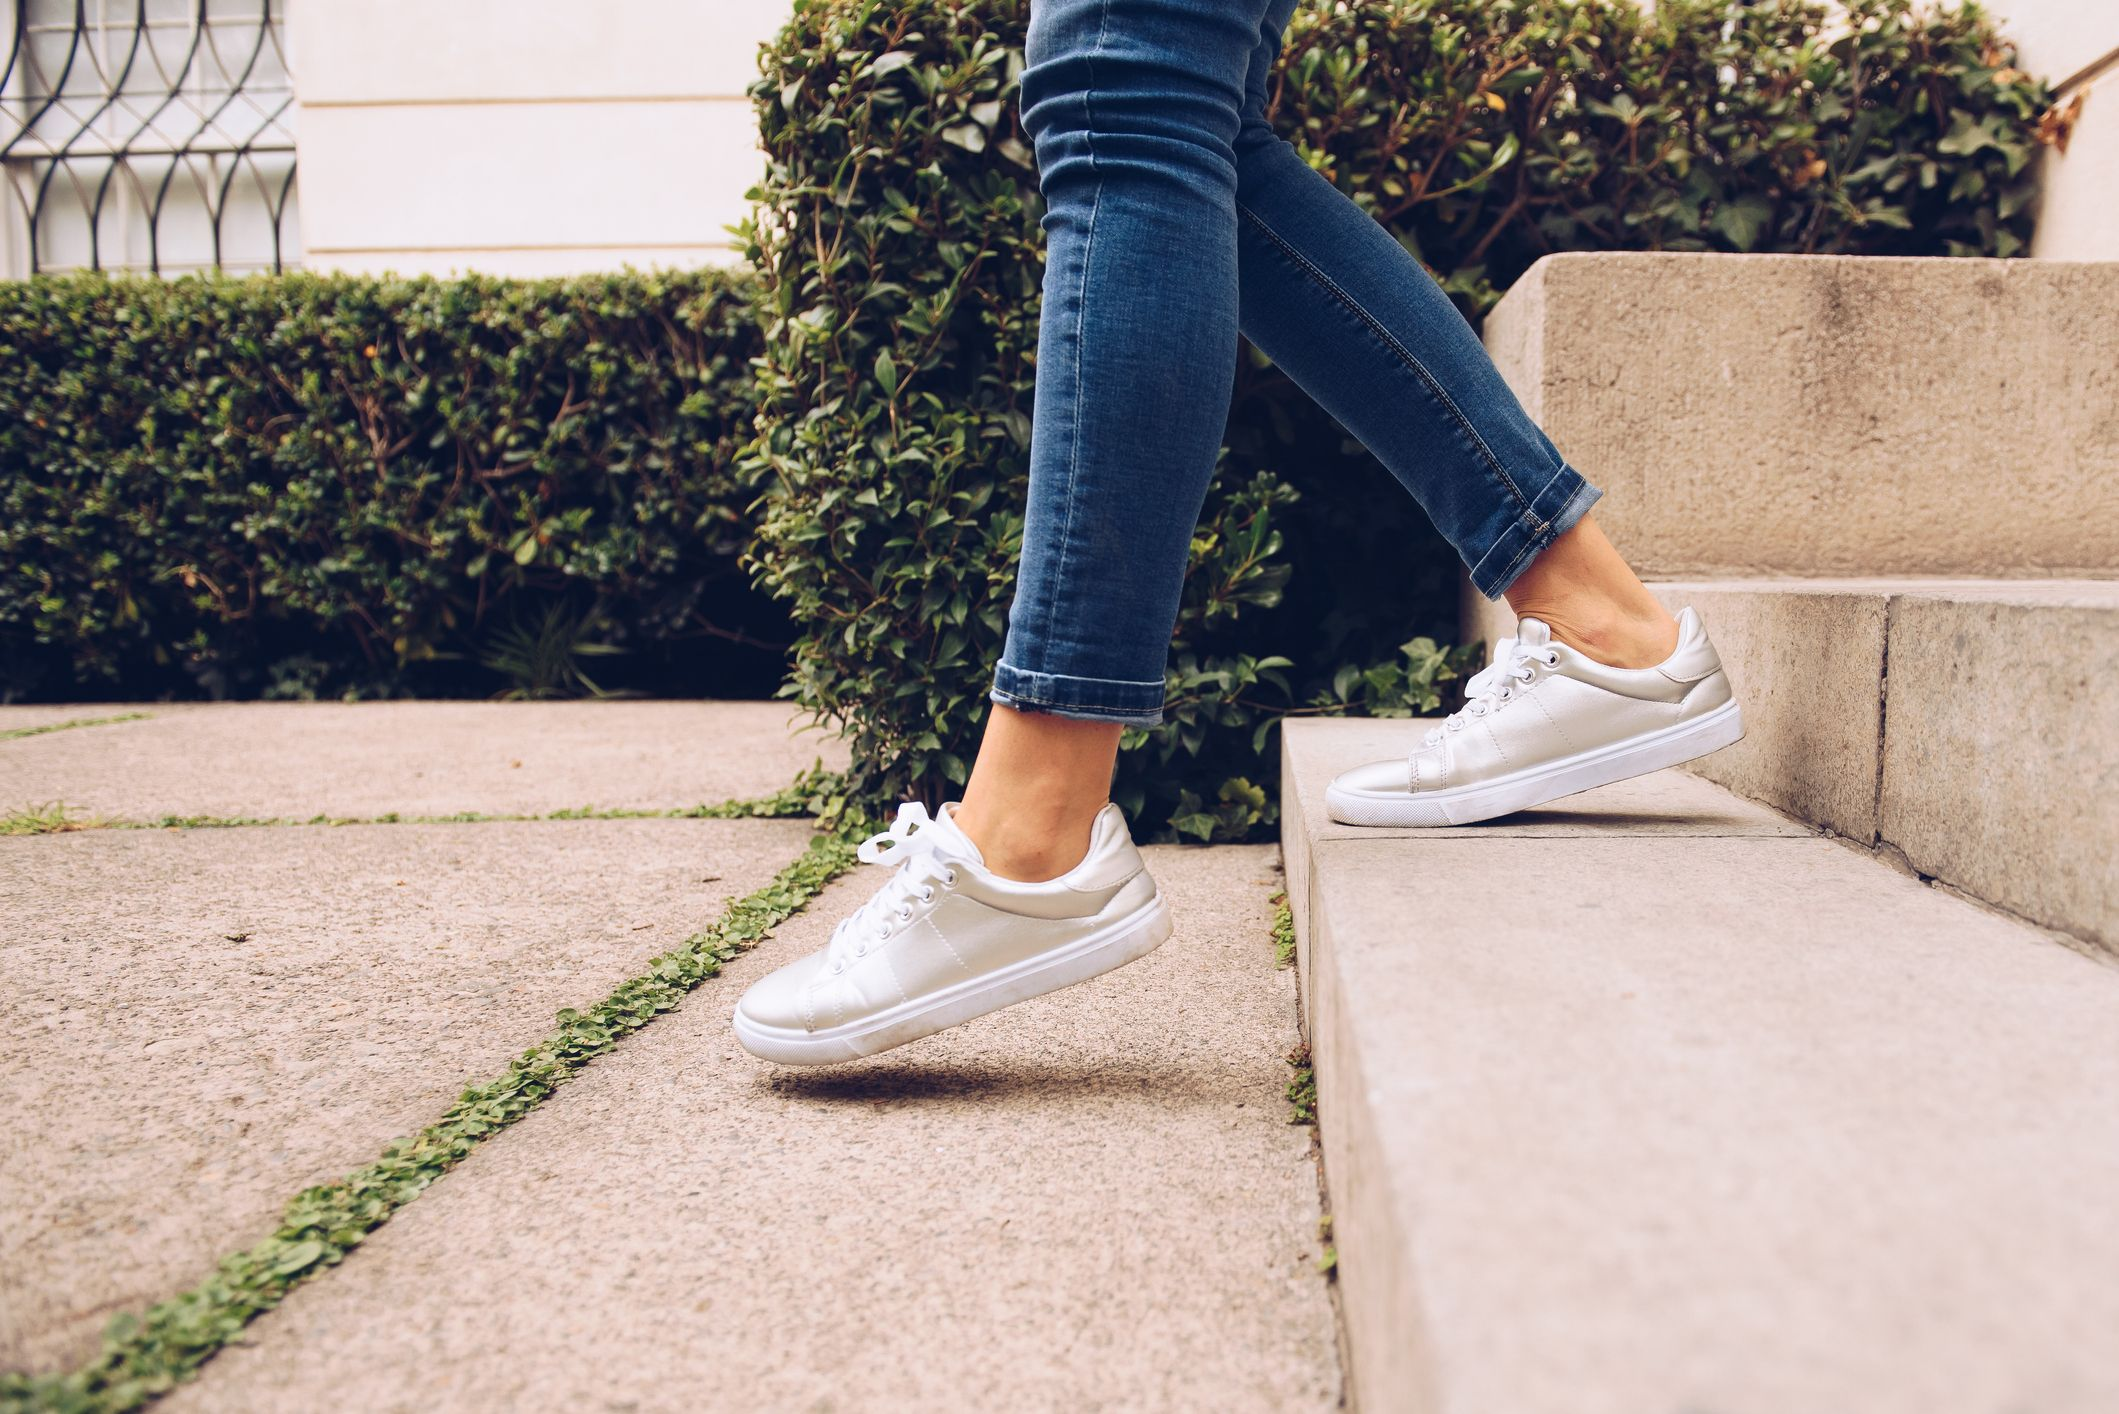 Zappos's End-of-Summer Sale Has Amazing Deals on Comfortable Walking Shoes